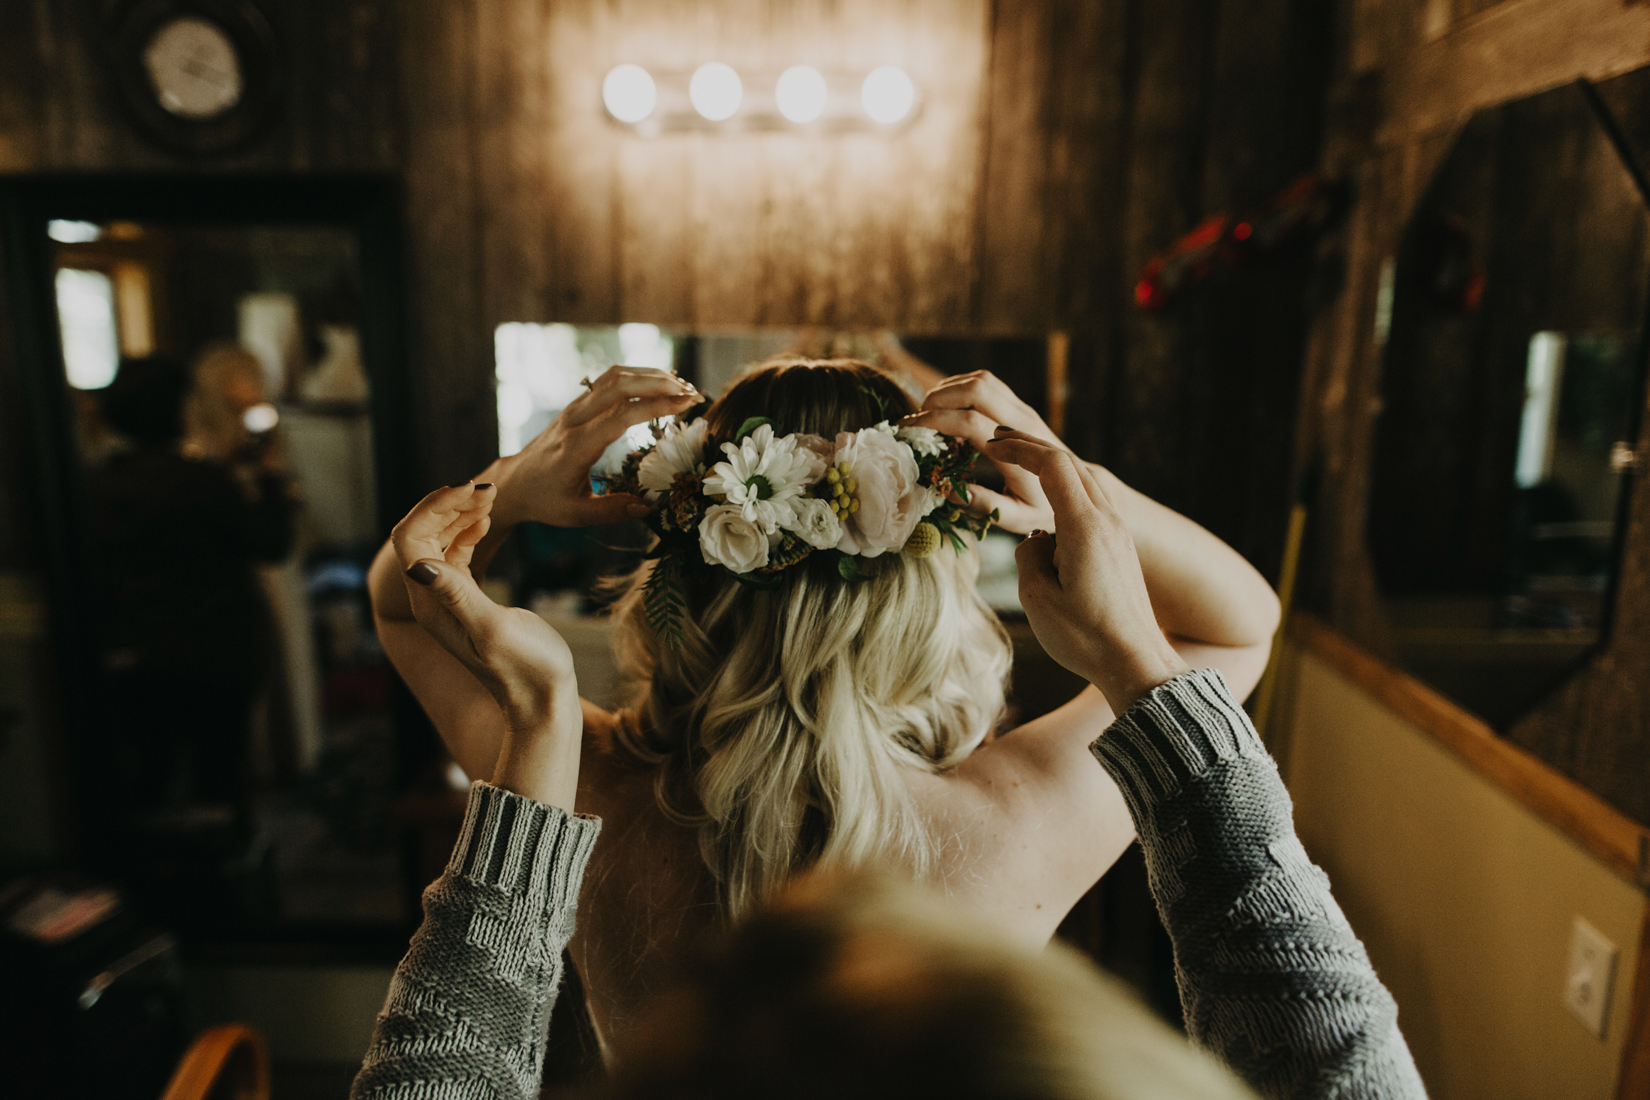 Bridesmaid helps bride adjust floral crown